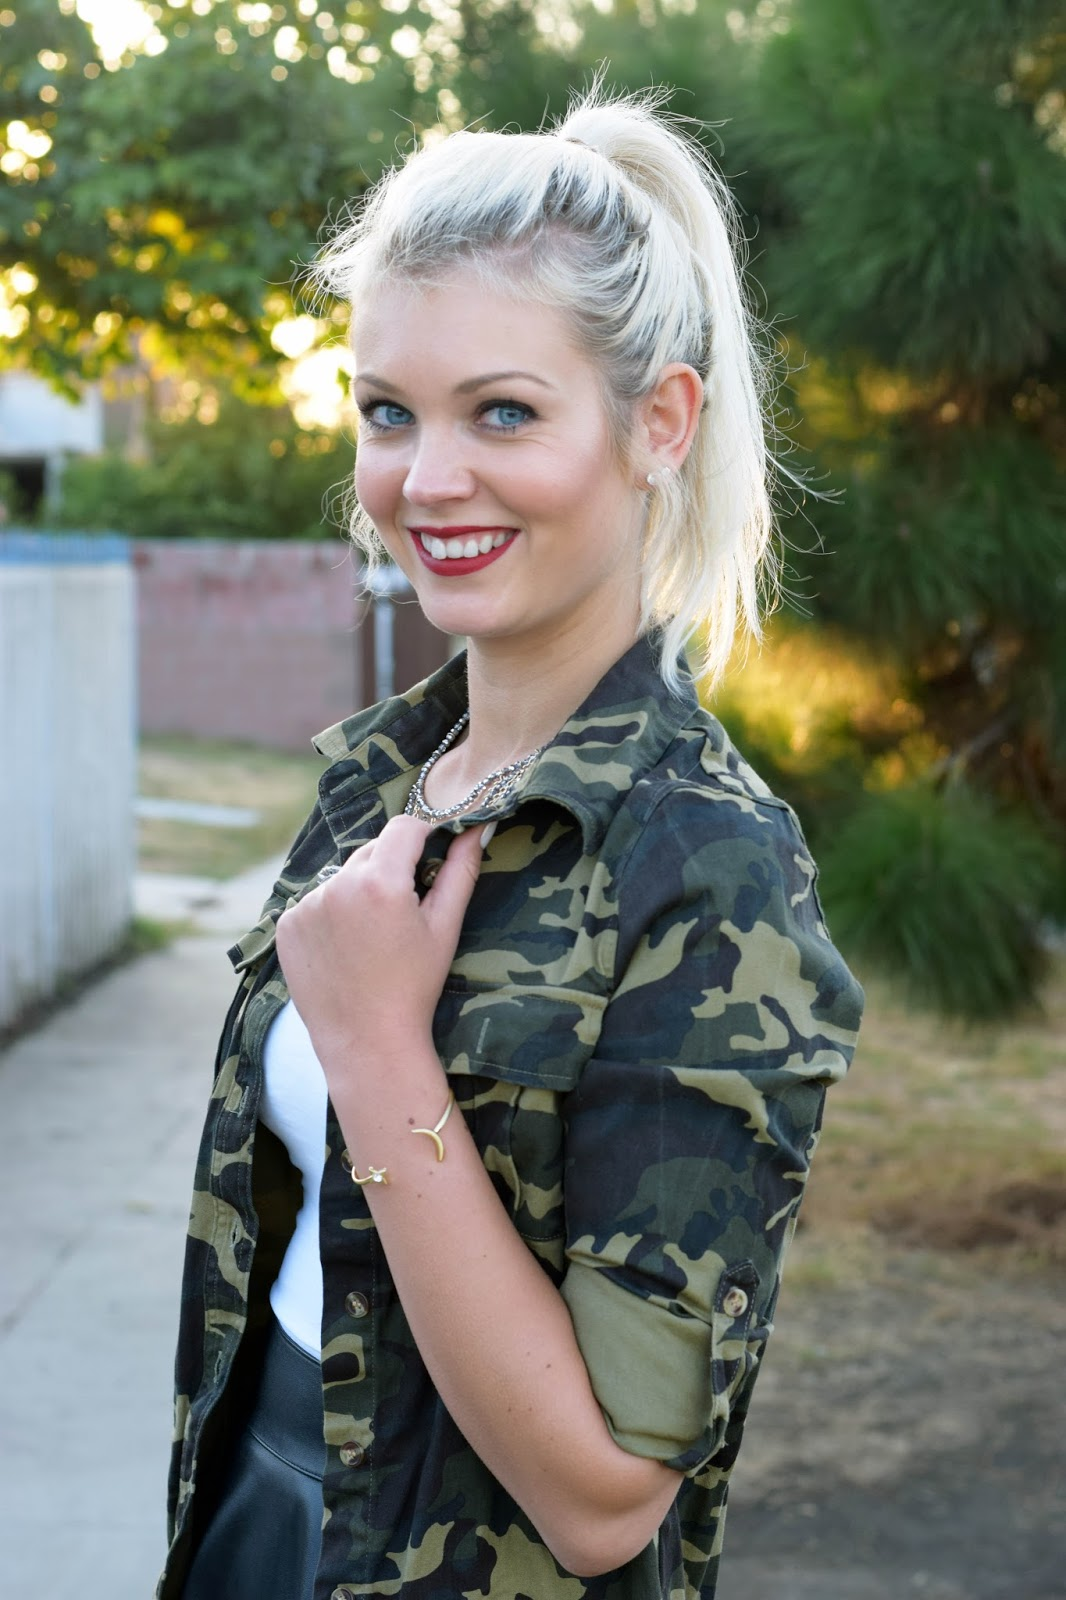 amry jacket- army jacket rebels market- marlyn schiff